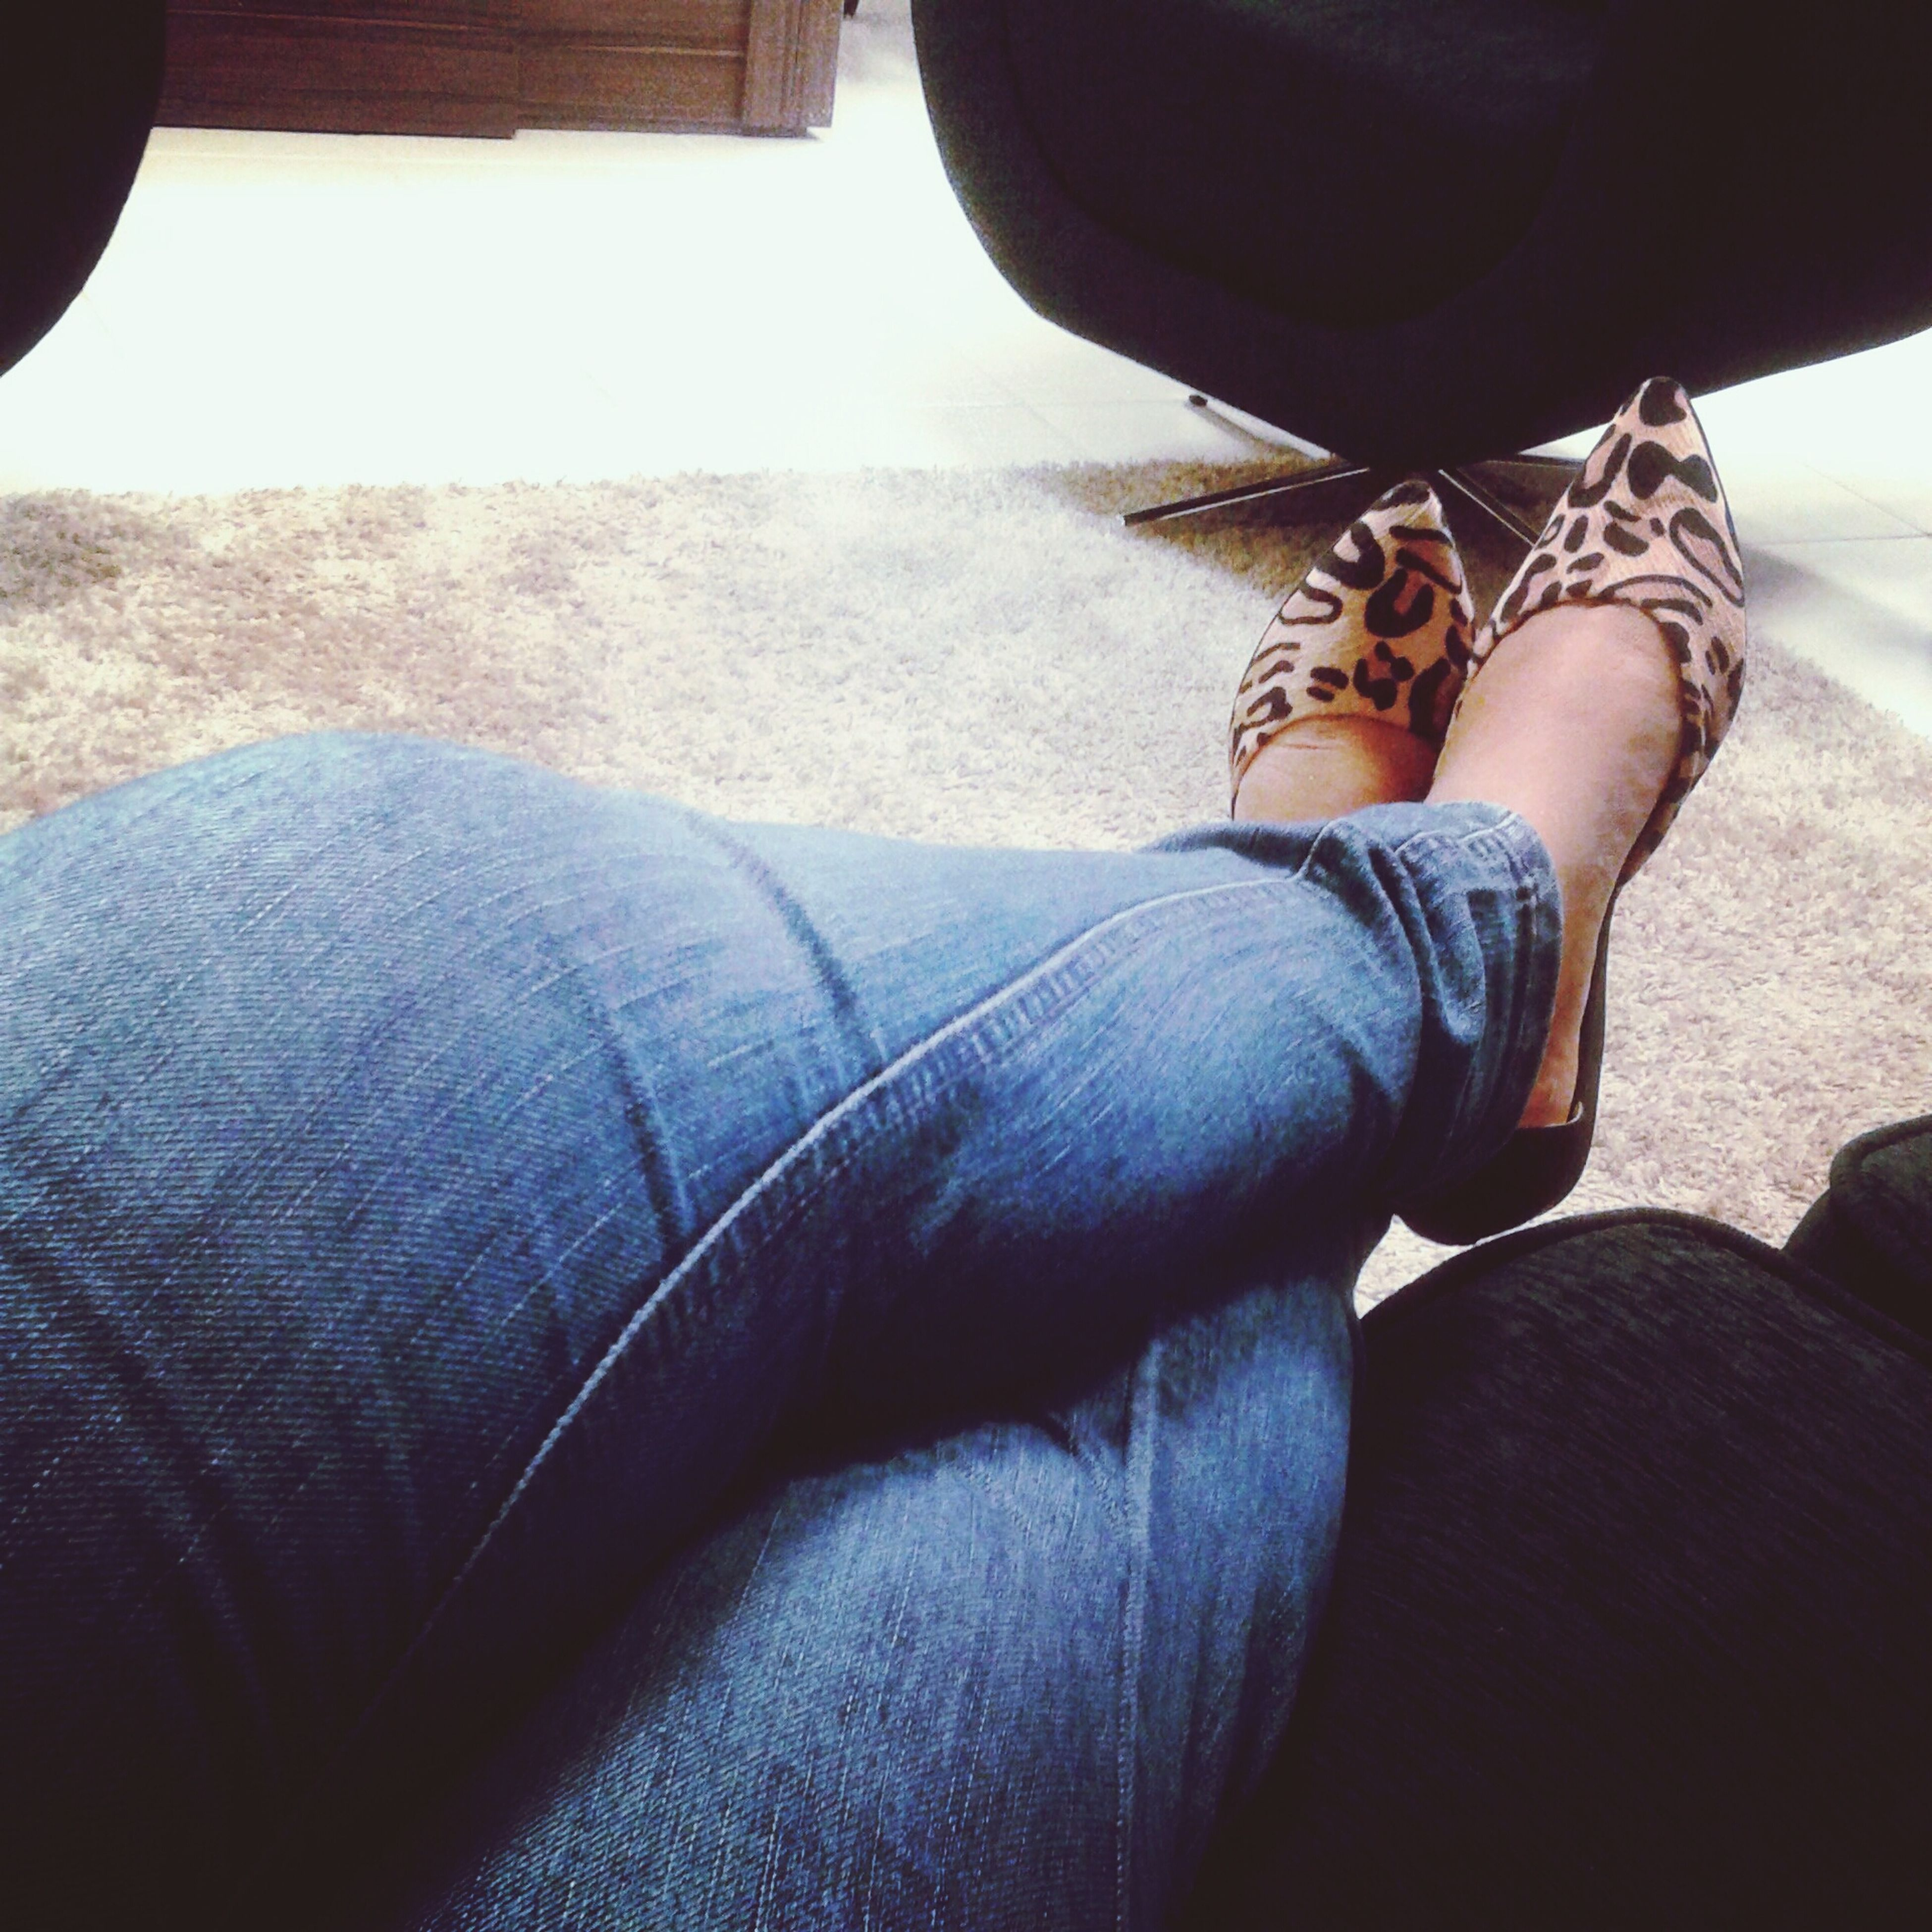 low section, person, lifestyles, jeans, leisure activity, personal perspective, human foot, shoe, relaxation, sitting, part of, casual clothing, men, legs crossed at ankle, close-up, day